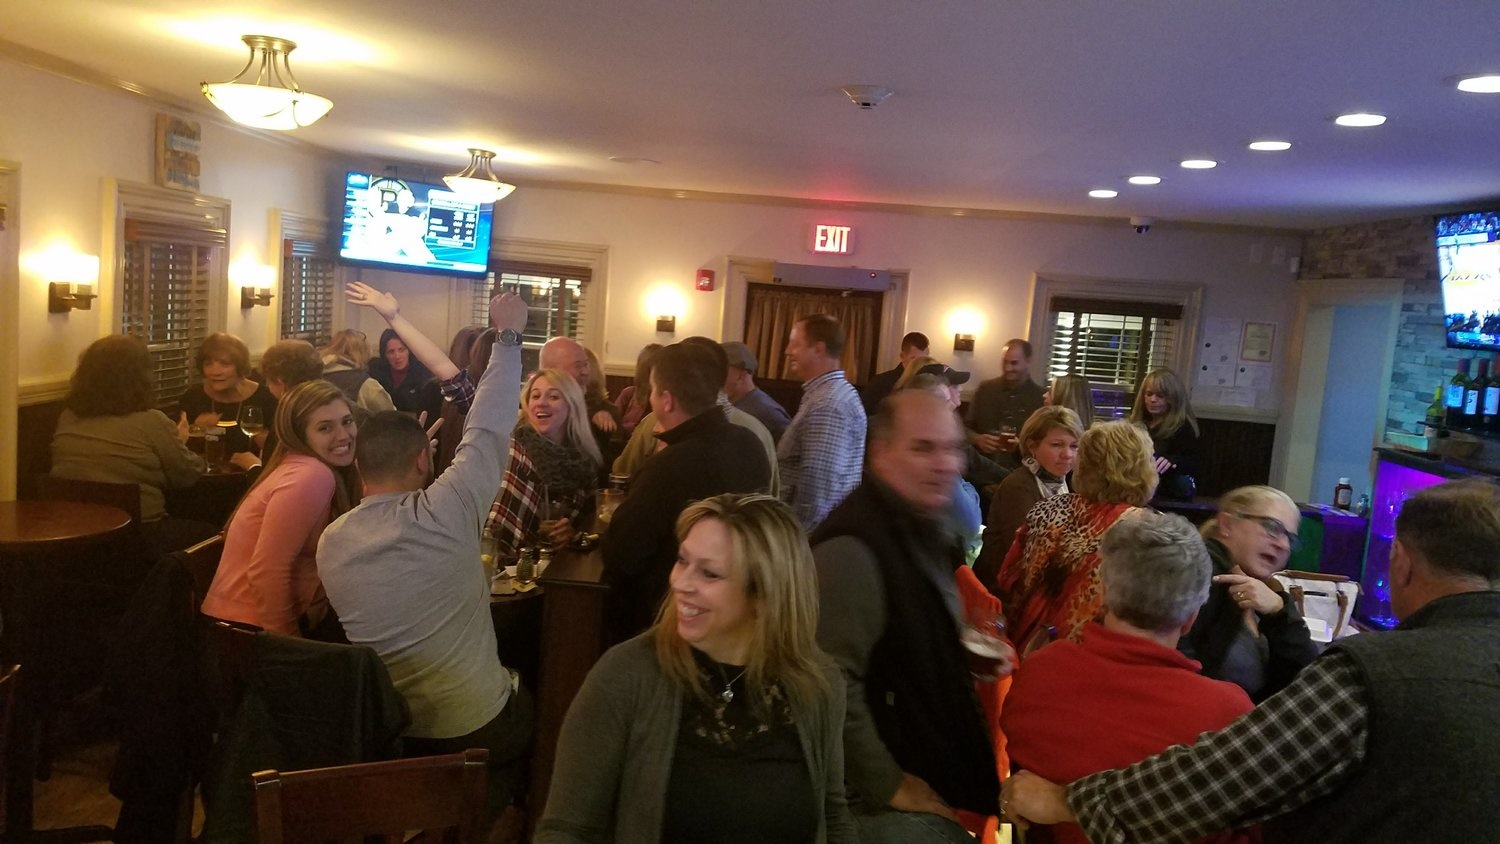 Busy, busy, busy at the Patriot Tavern in Walpole MA!